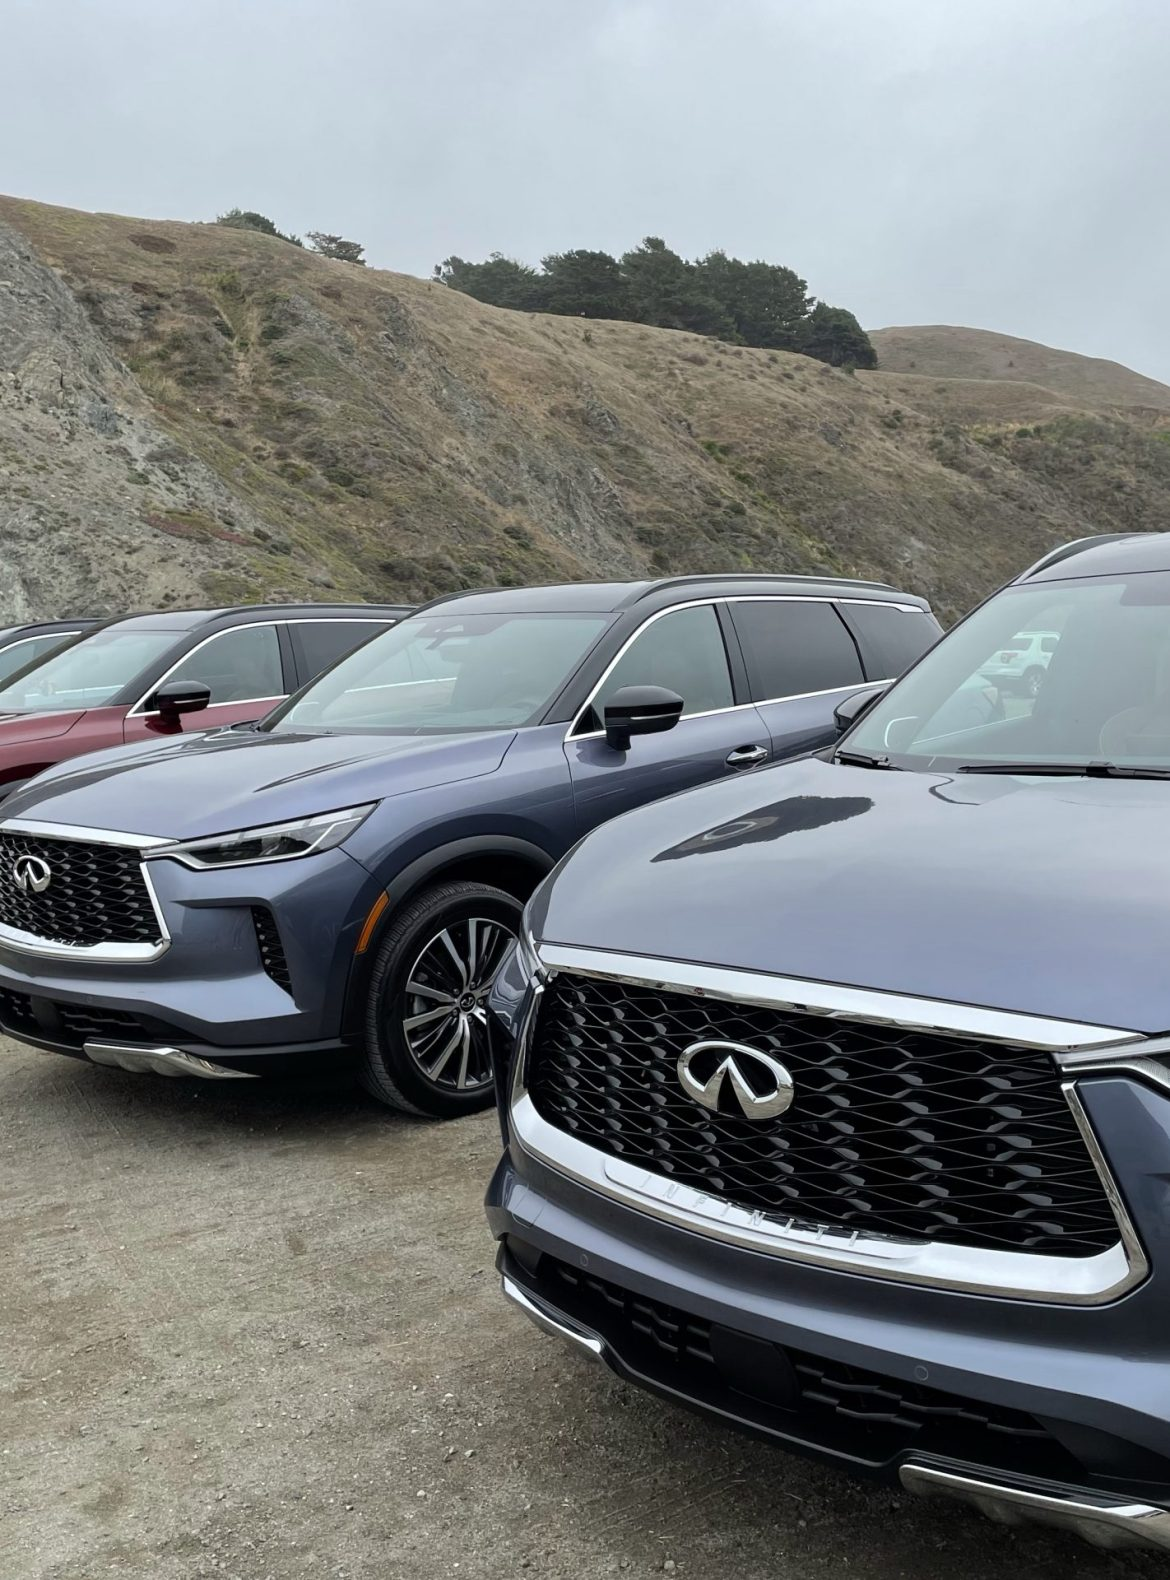 The 2022 Infiniti QX60 Tour: Behold the Most Beautiful, Luxurious SUV You Will Ever Drive 3